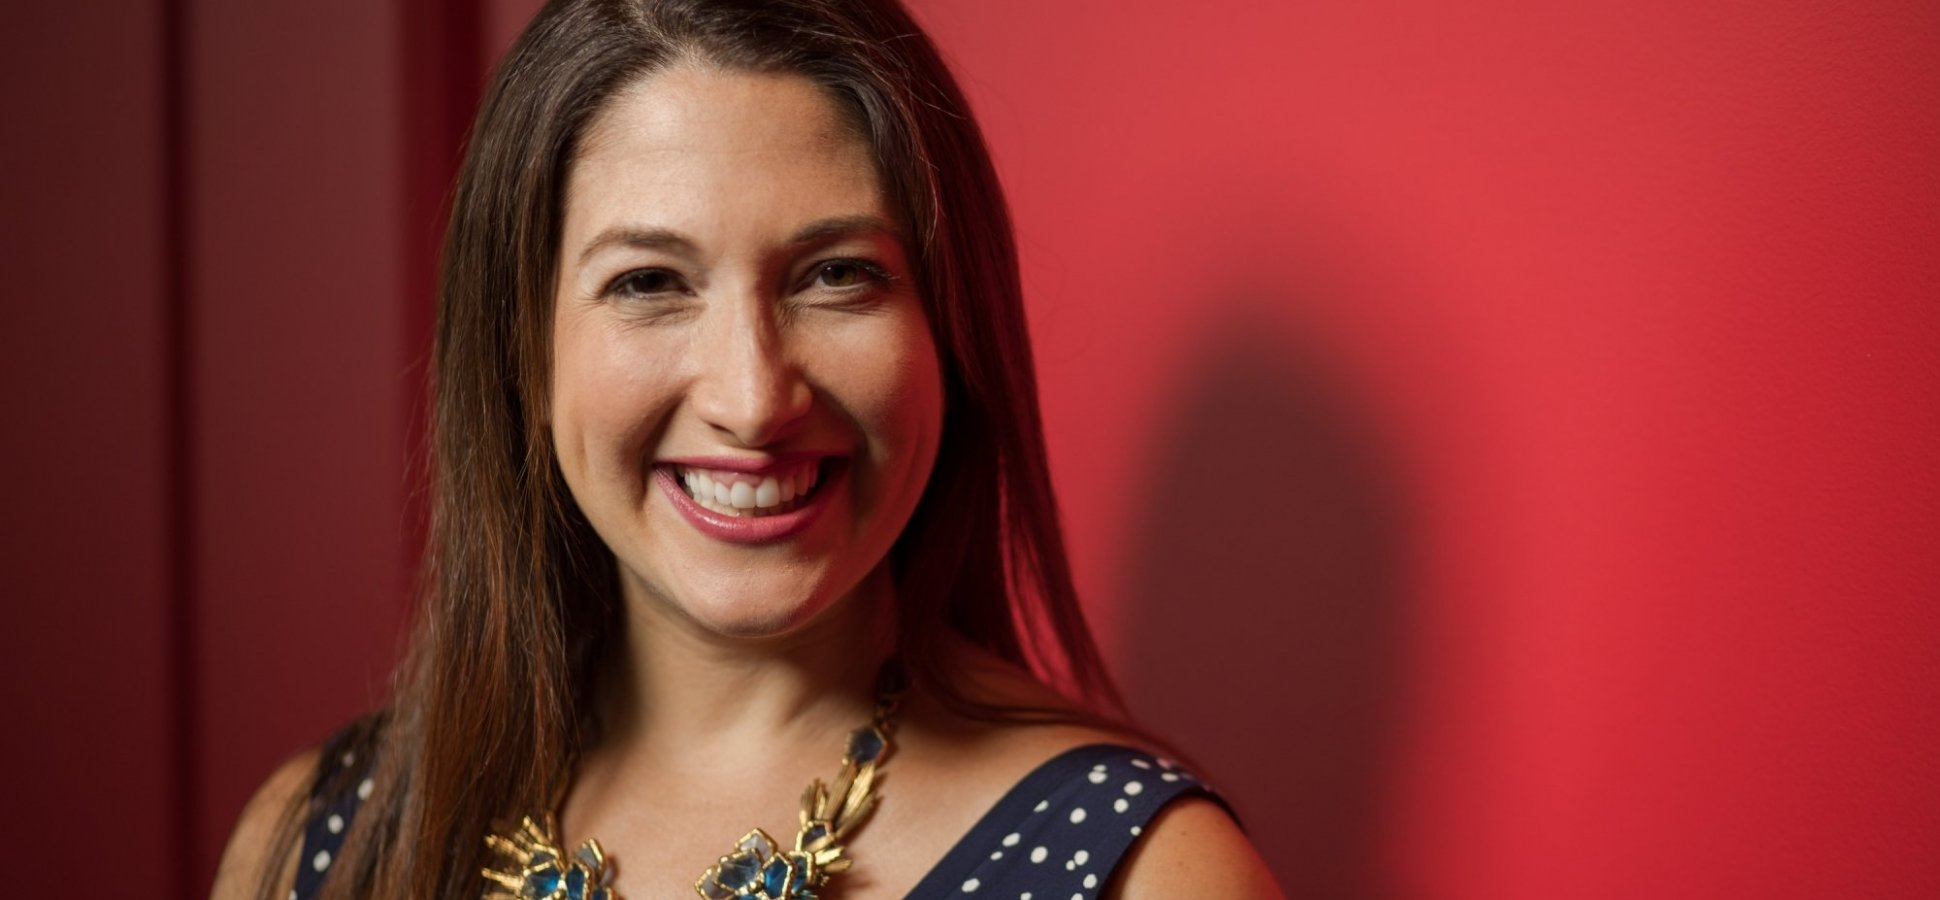 With Just 1 Sentence, Randi Zuckerberg Will Make You Rethink Work-Life Balance Forever